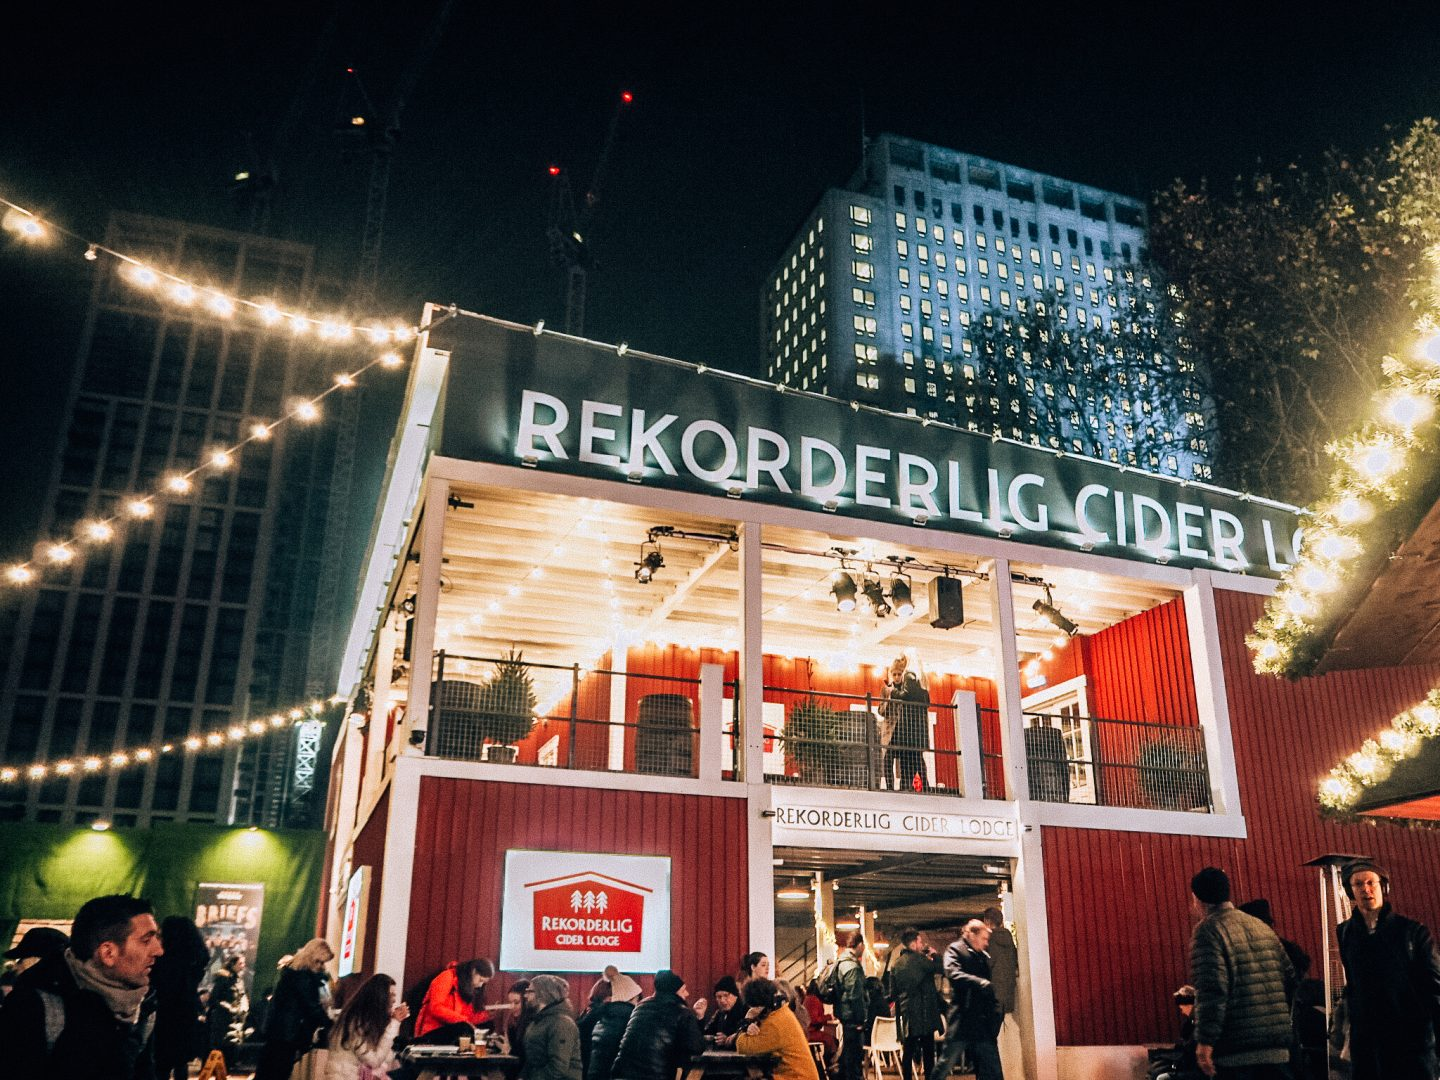 Outside Rekorderlig Cider Lodge